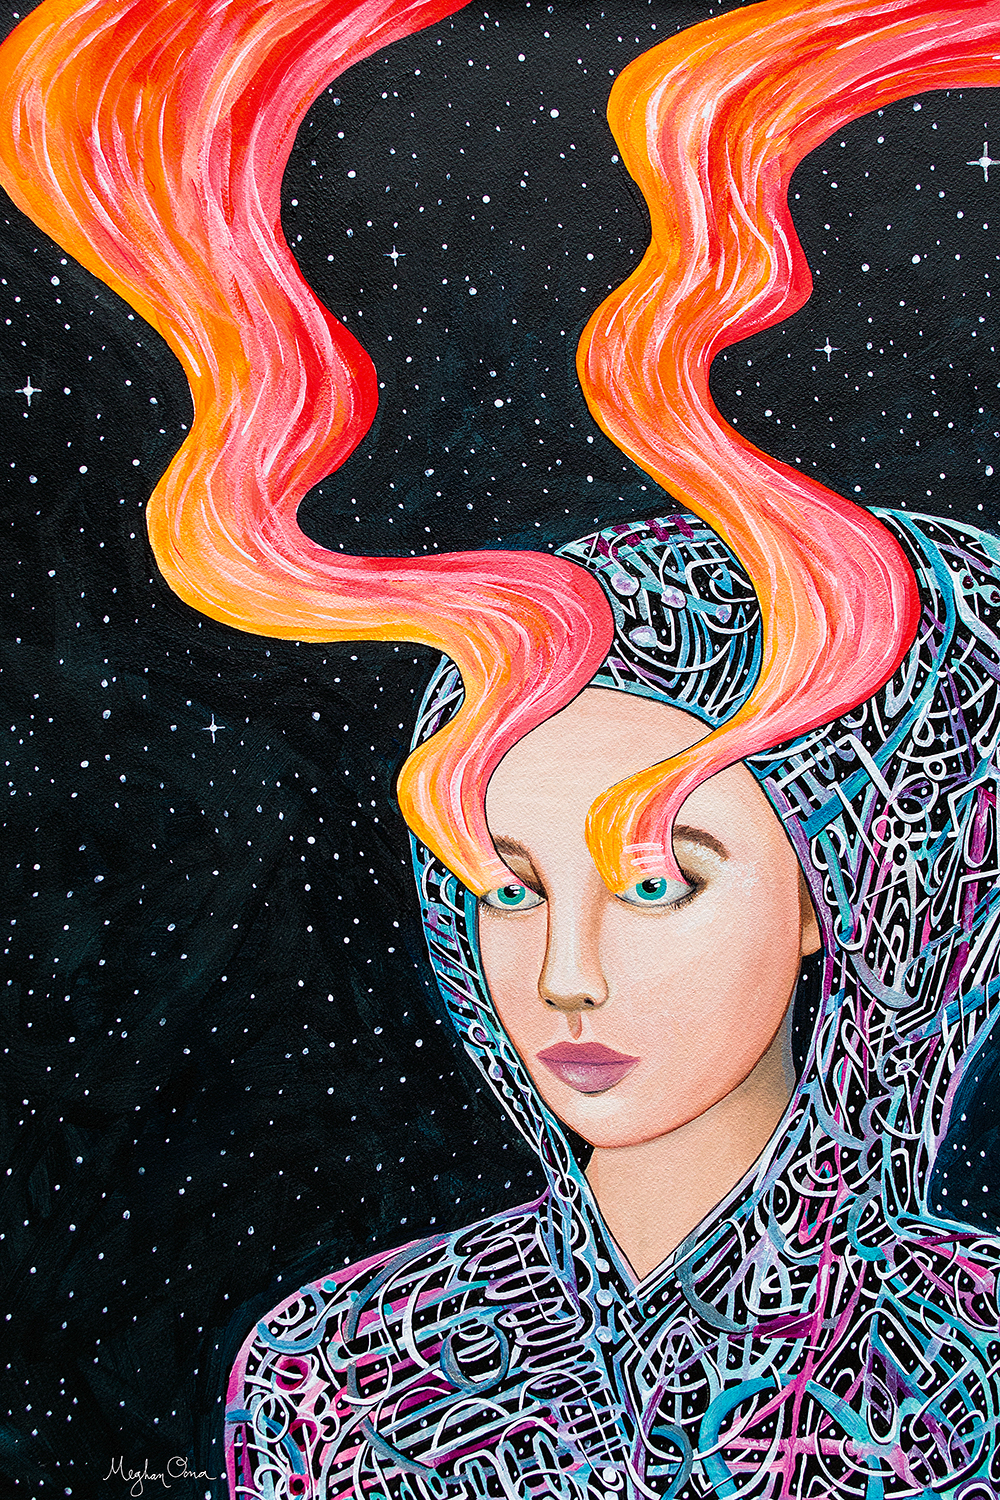 girl wearing hooded sweatshirt with abstract lines in space with bright red, yellow and gold streams drifting upward from her eyes